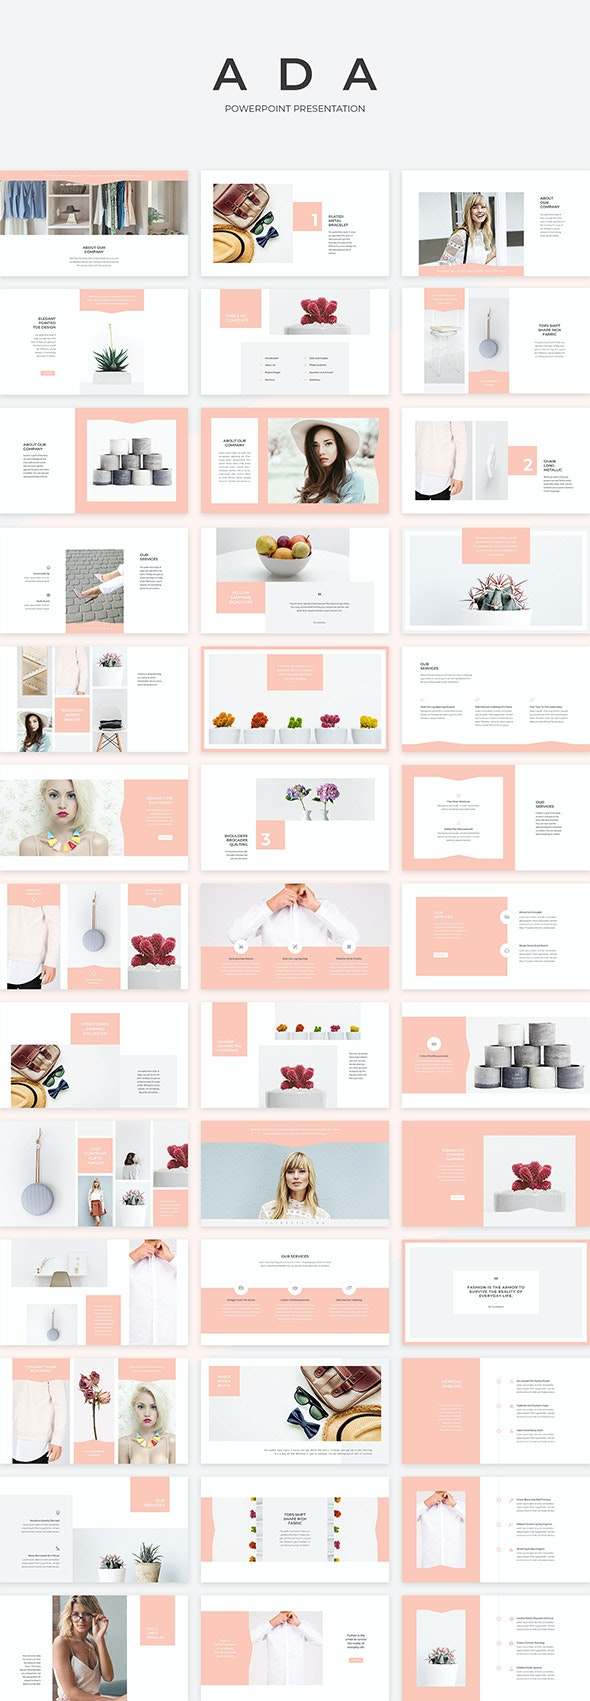 Ada PowerPoint Presentation Template - PowerPoint Templates Presentation Templates